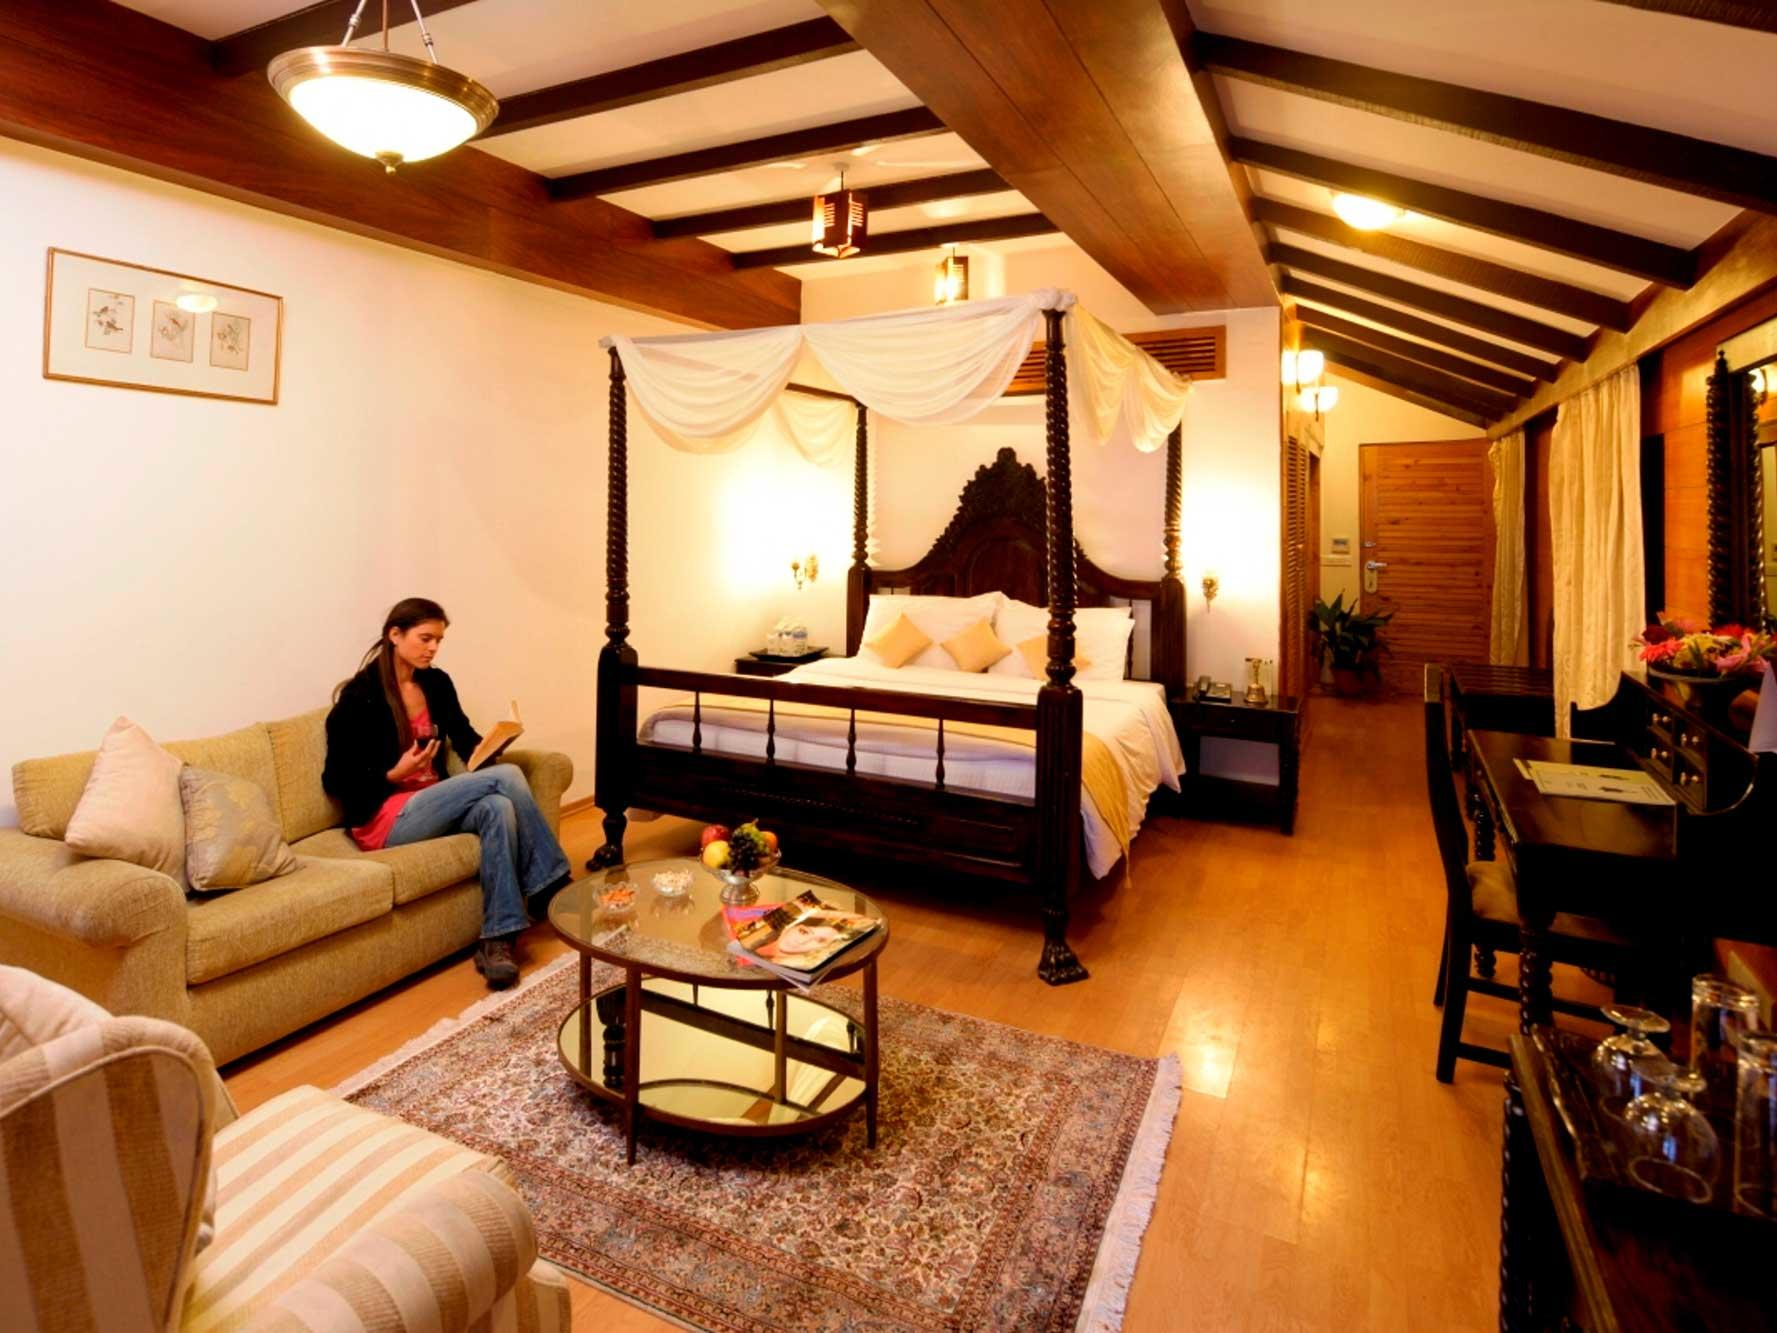 Deluxe Room at ManuAllaya Resort Spa Manali in Himachal Pradesh, India